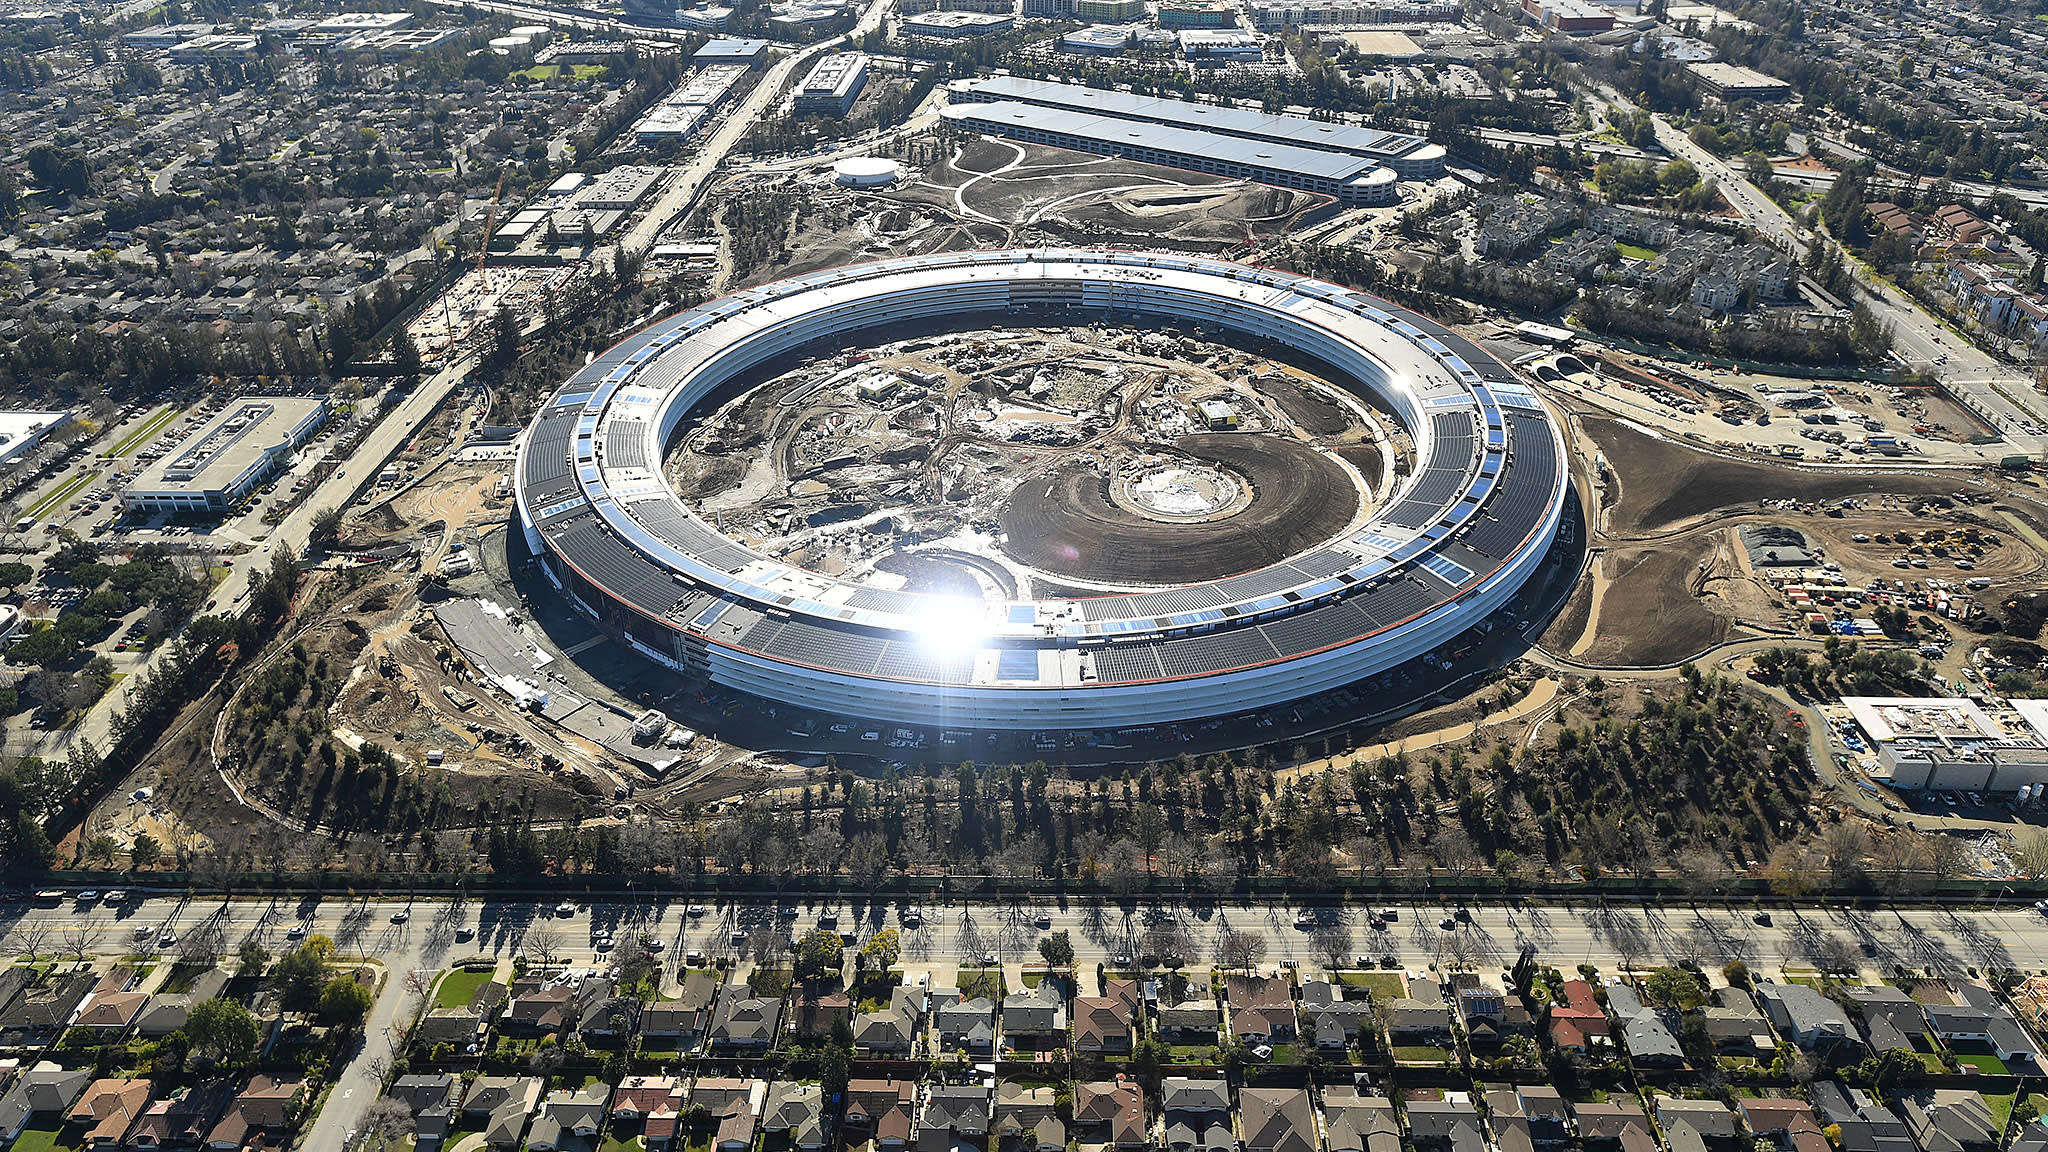 The Apple Campus 2 is seen under construction in Cupertino, California in this aerial photo taken January 13, 2017